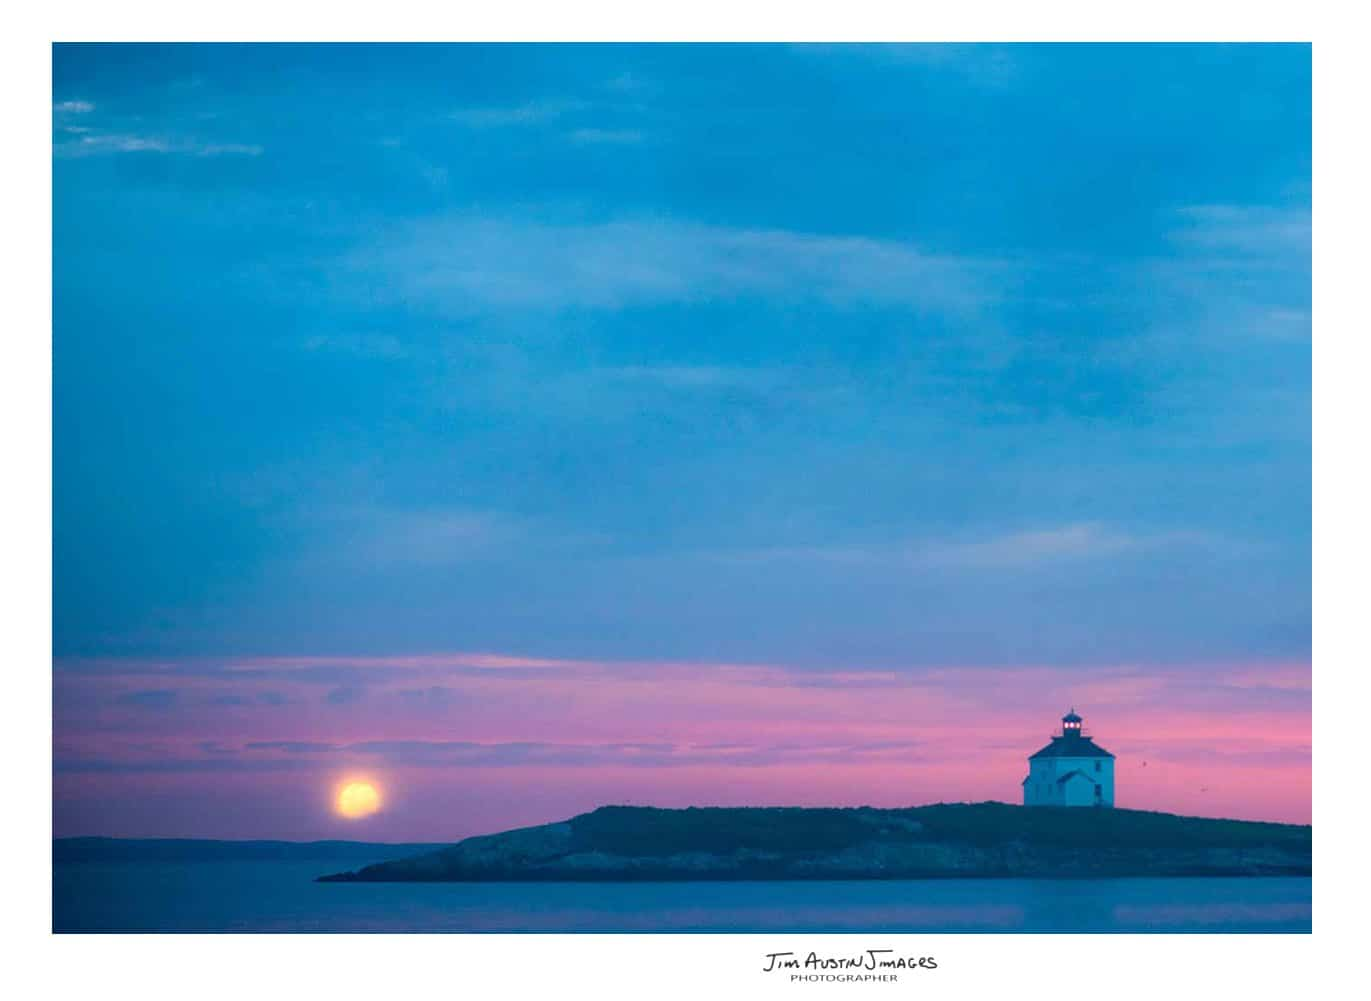 Jim-Austin-Jimages-Rook-Island-Full-Moon-Lighthouse-85-mm